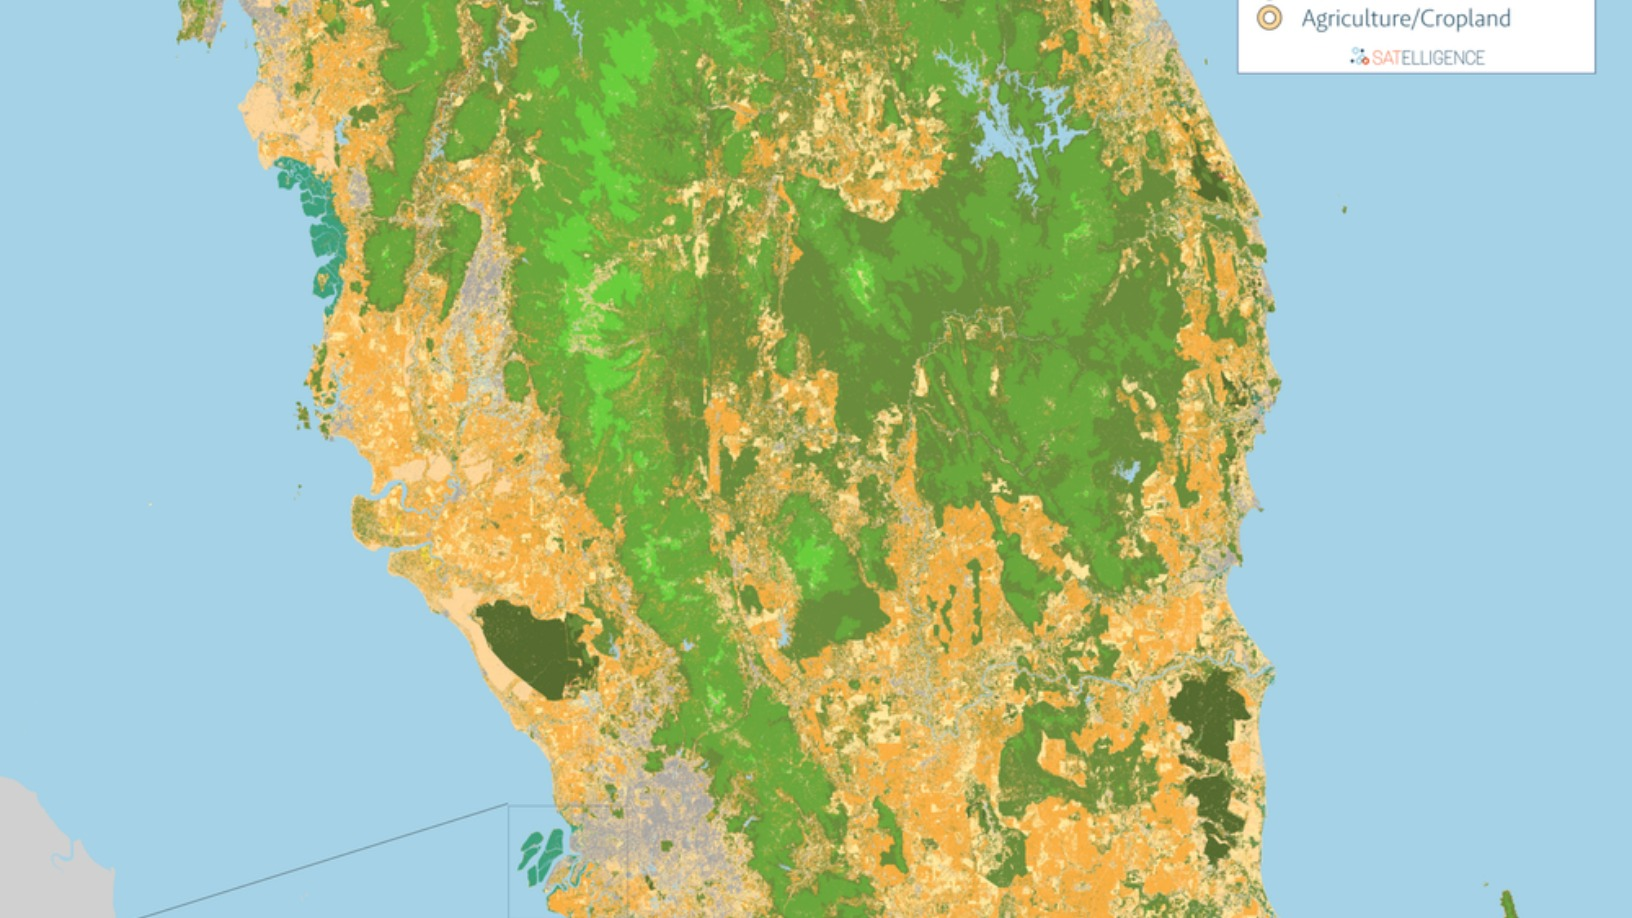 Satelligence: Satellite data and AI helping corporate giants source commodities more sustainably